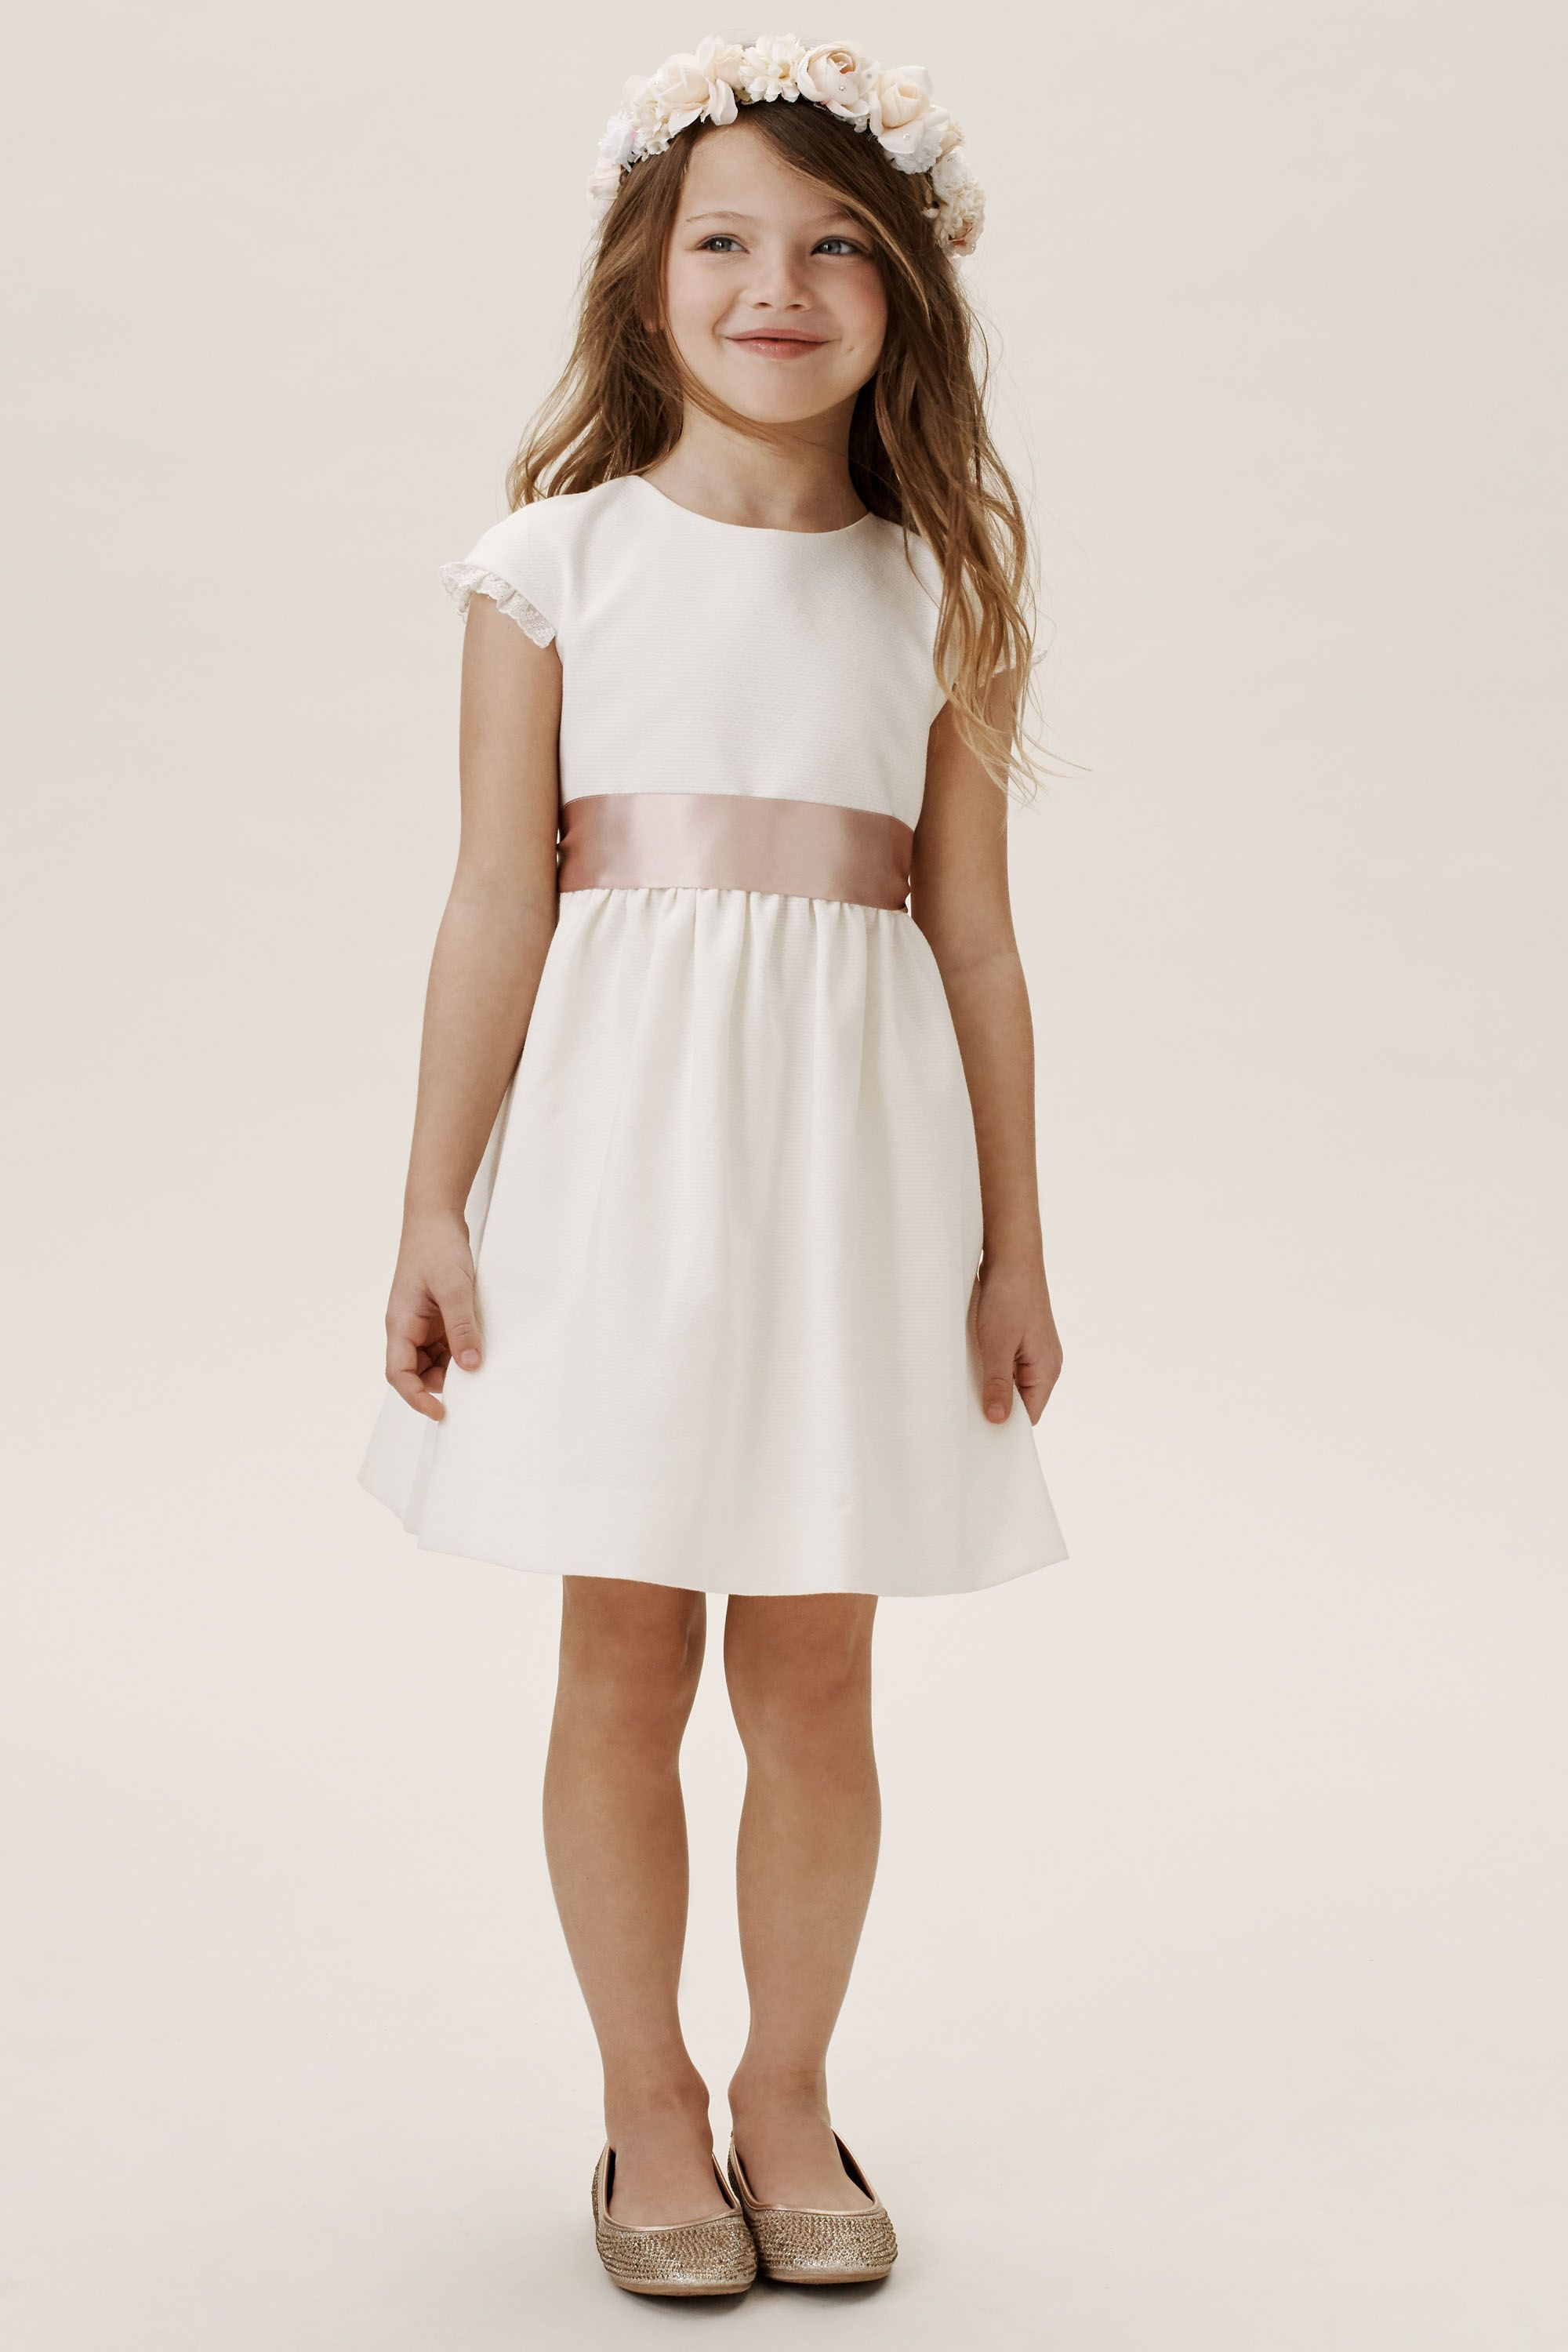 cute casual flower girl dress ideas Fitz cap sleeve dress from BHLDN